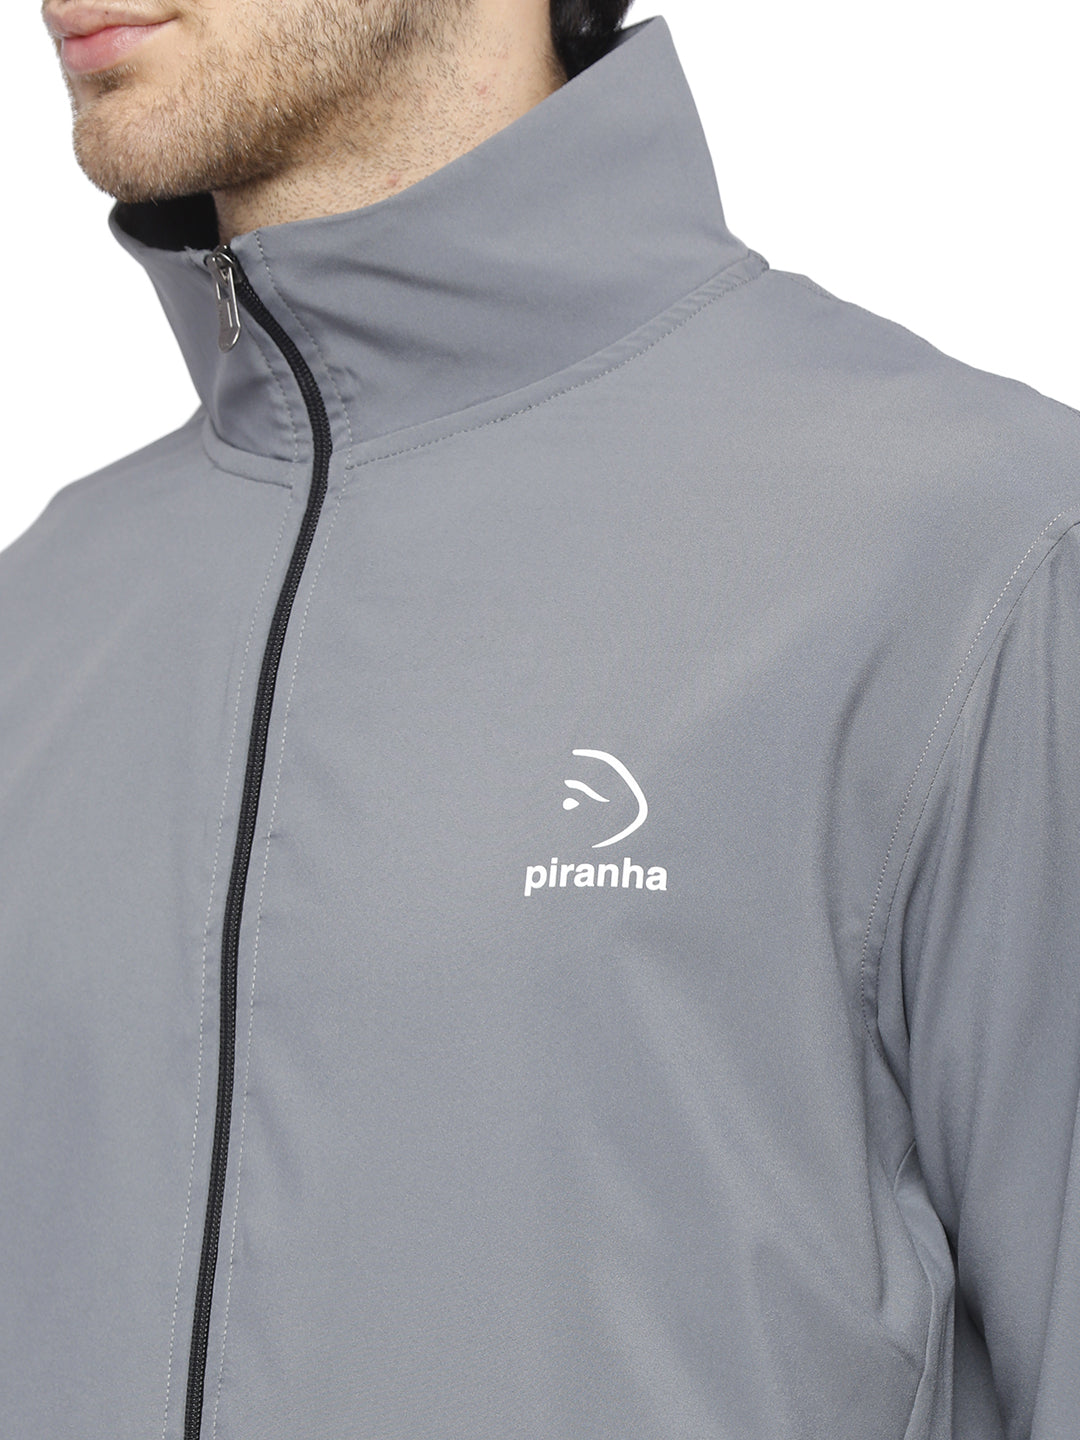 Piranha Men's Grey Woven Track Jacket - MTJ325